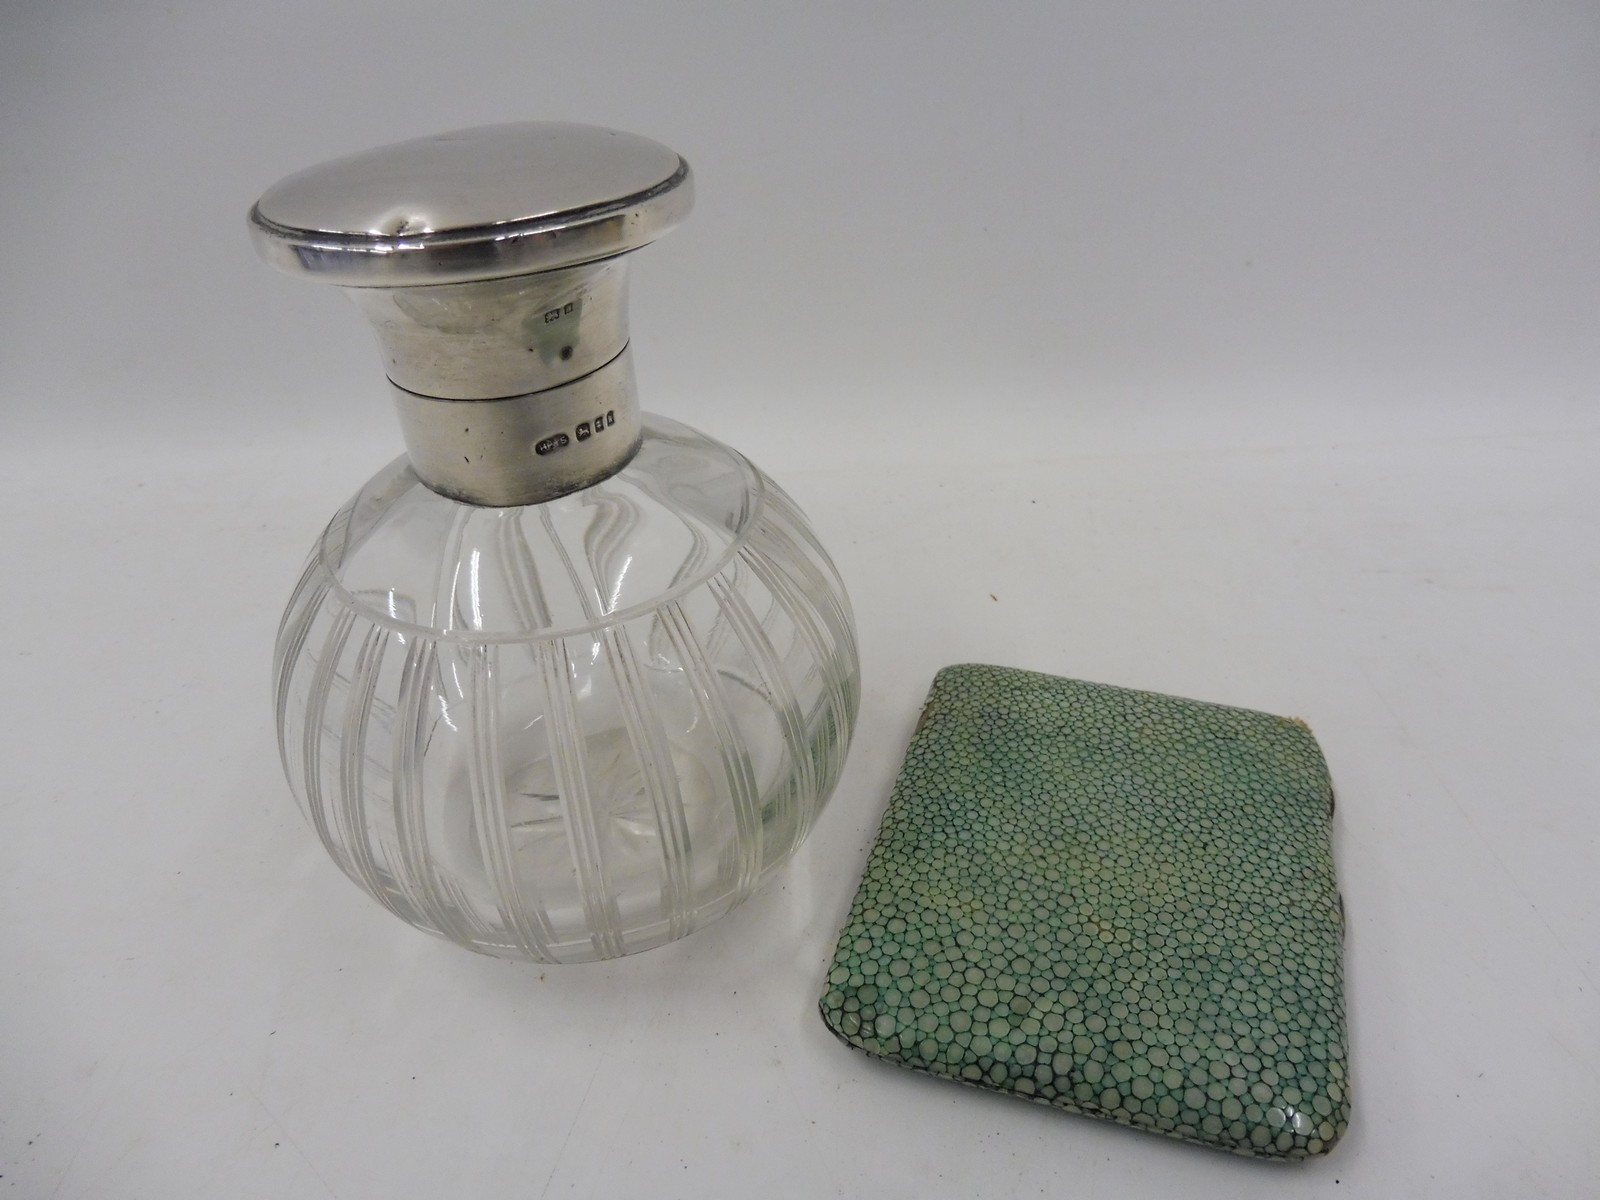 Lot 43 - A silver mounted bulbous glass scent bottle and a shagreen covered silver cigarette case.